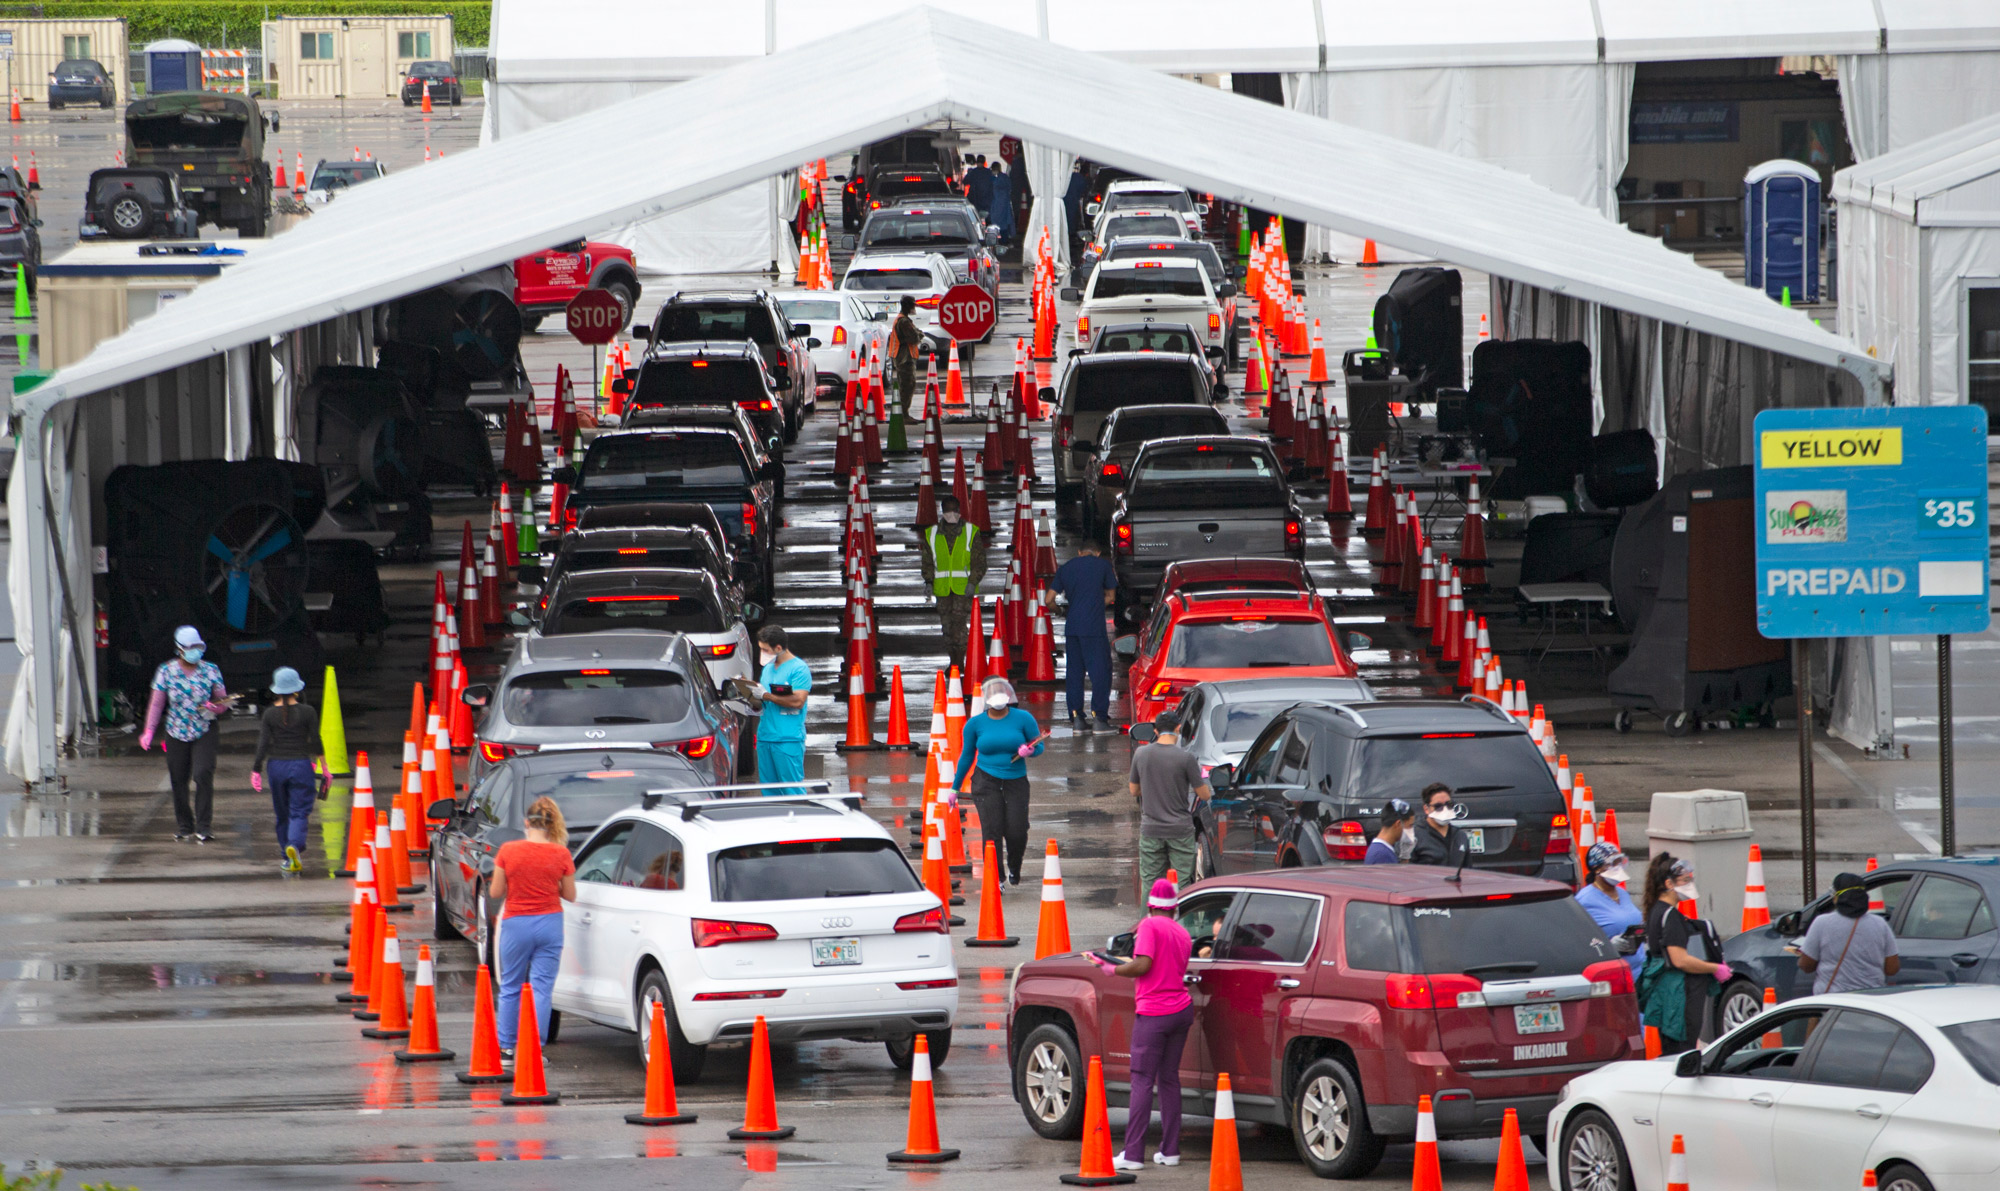 Vehicles line up as healthcare workers help to check-in people being tested at the COVID-19 drive-thru testing center at Hard Rock Stadium in Miami Gardens, Florida, on November 22.